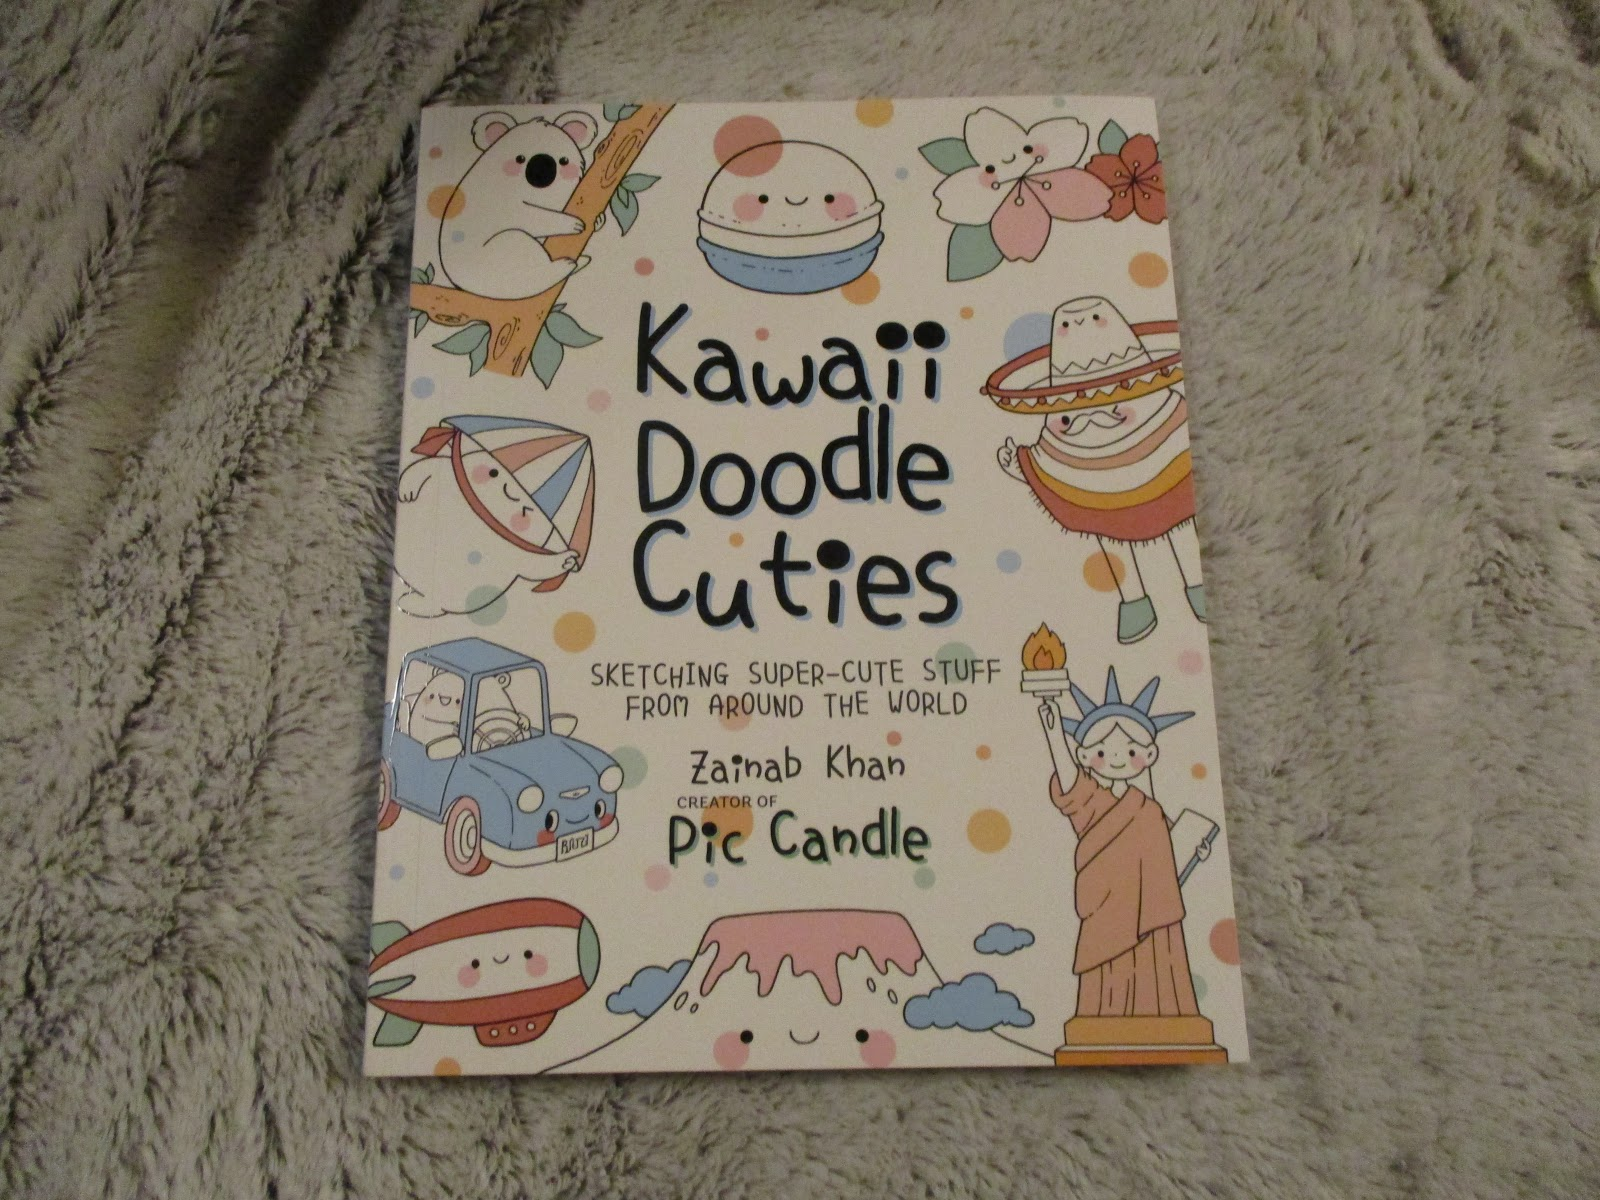 Kawaii Doodle Cuties Sketching Super-Cute Stuff From Around The World By  Zainab Khan who created Pic Candle from Quarto Knows Publishing.